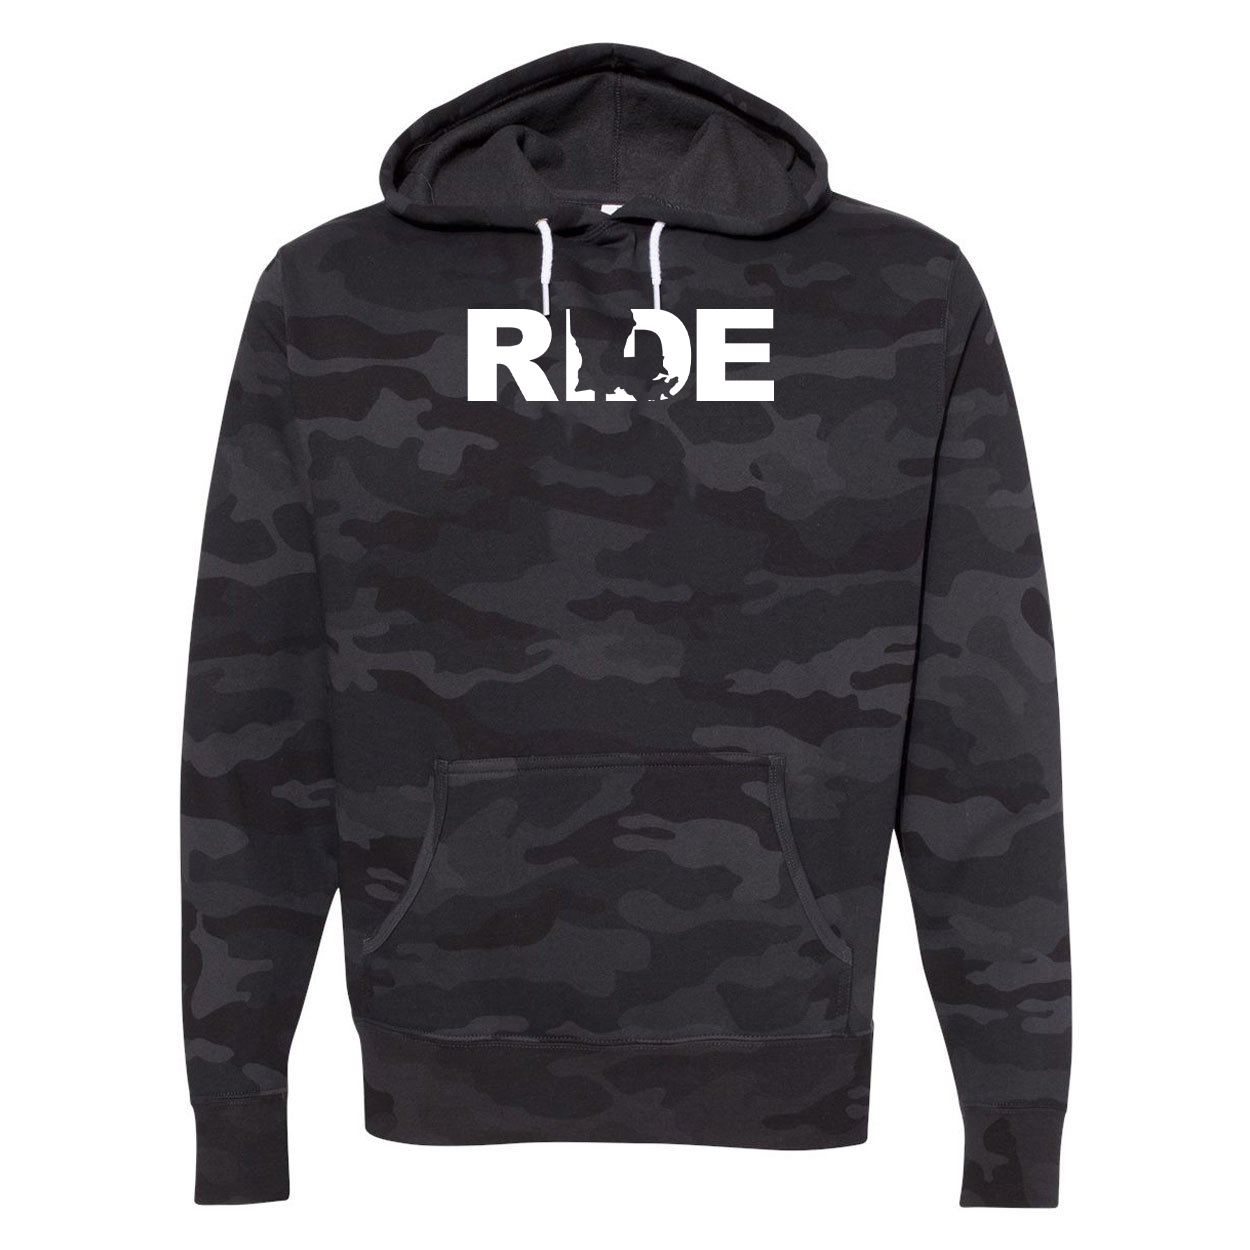 Ride Louisiana Classic Unisex Hooded Sweatshirt Black Camo (White Logo)